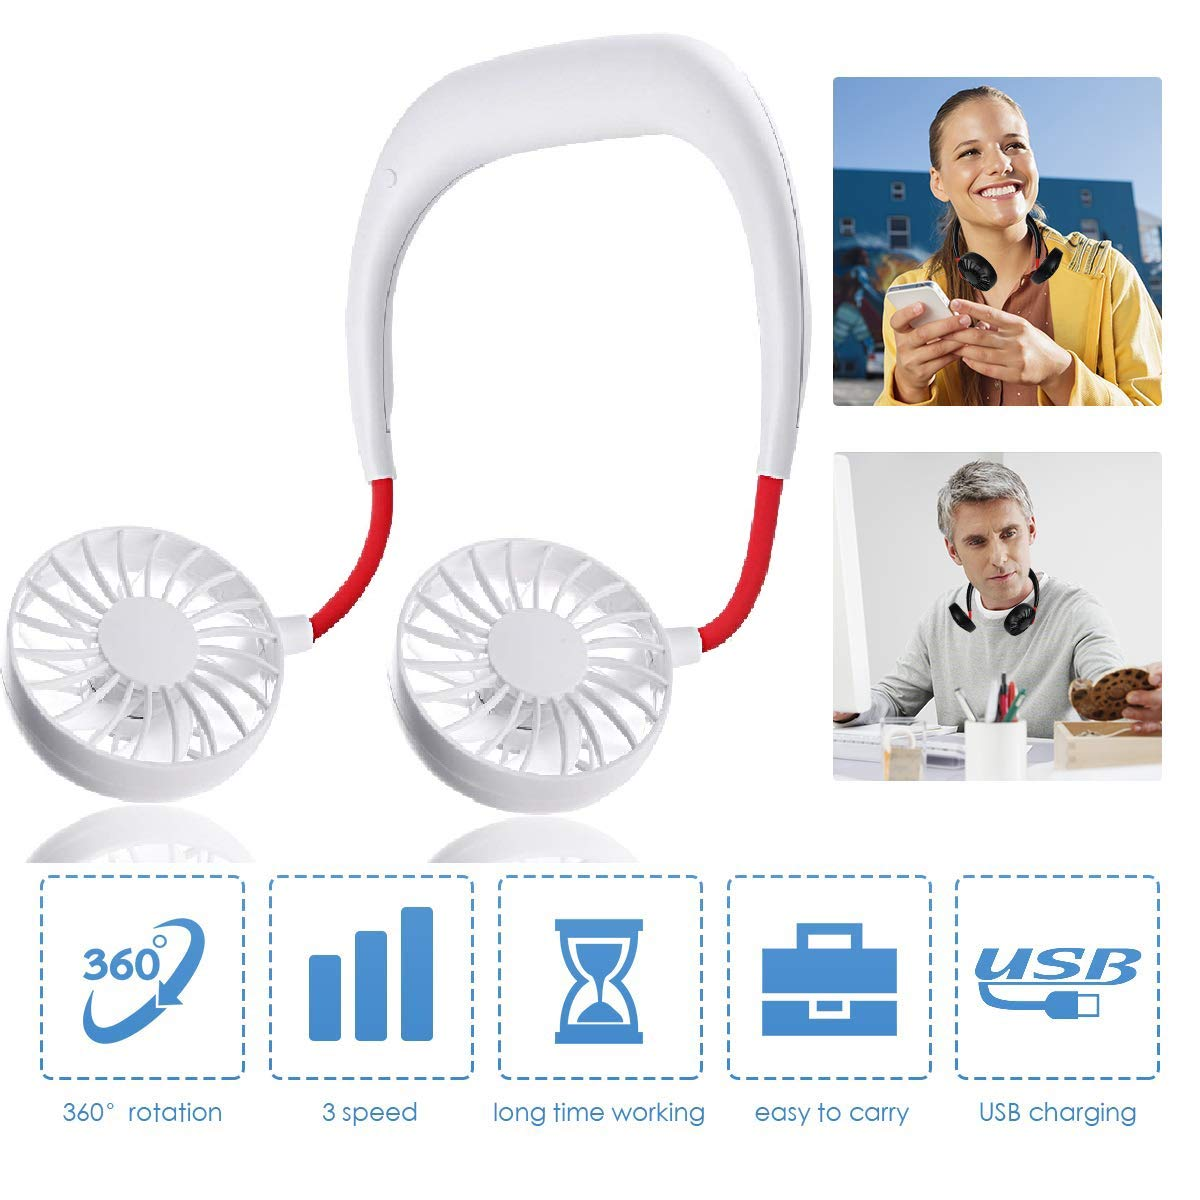 Adjustment Desktop Wearable Cooler Fans for Traveling//Camping//BBQ//Gym//Outdoor//Office with Free Rubber Hand Free Personal Fan Neckband Sport Fan Portable USB Battery Rechargeable Mini Fan Upgrade